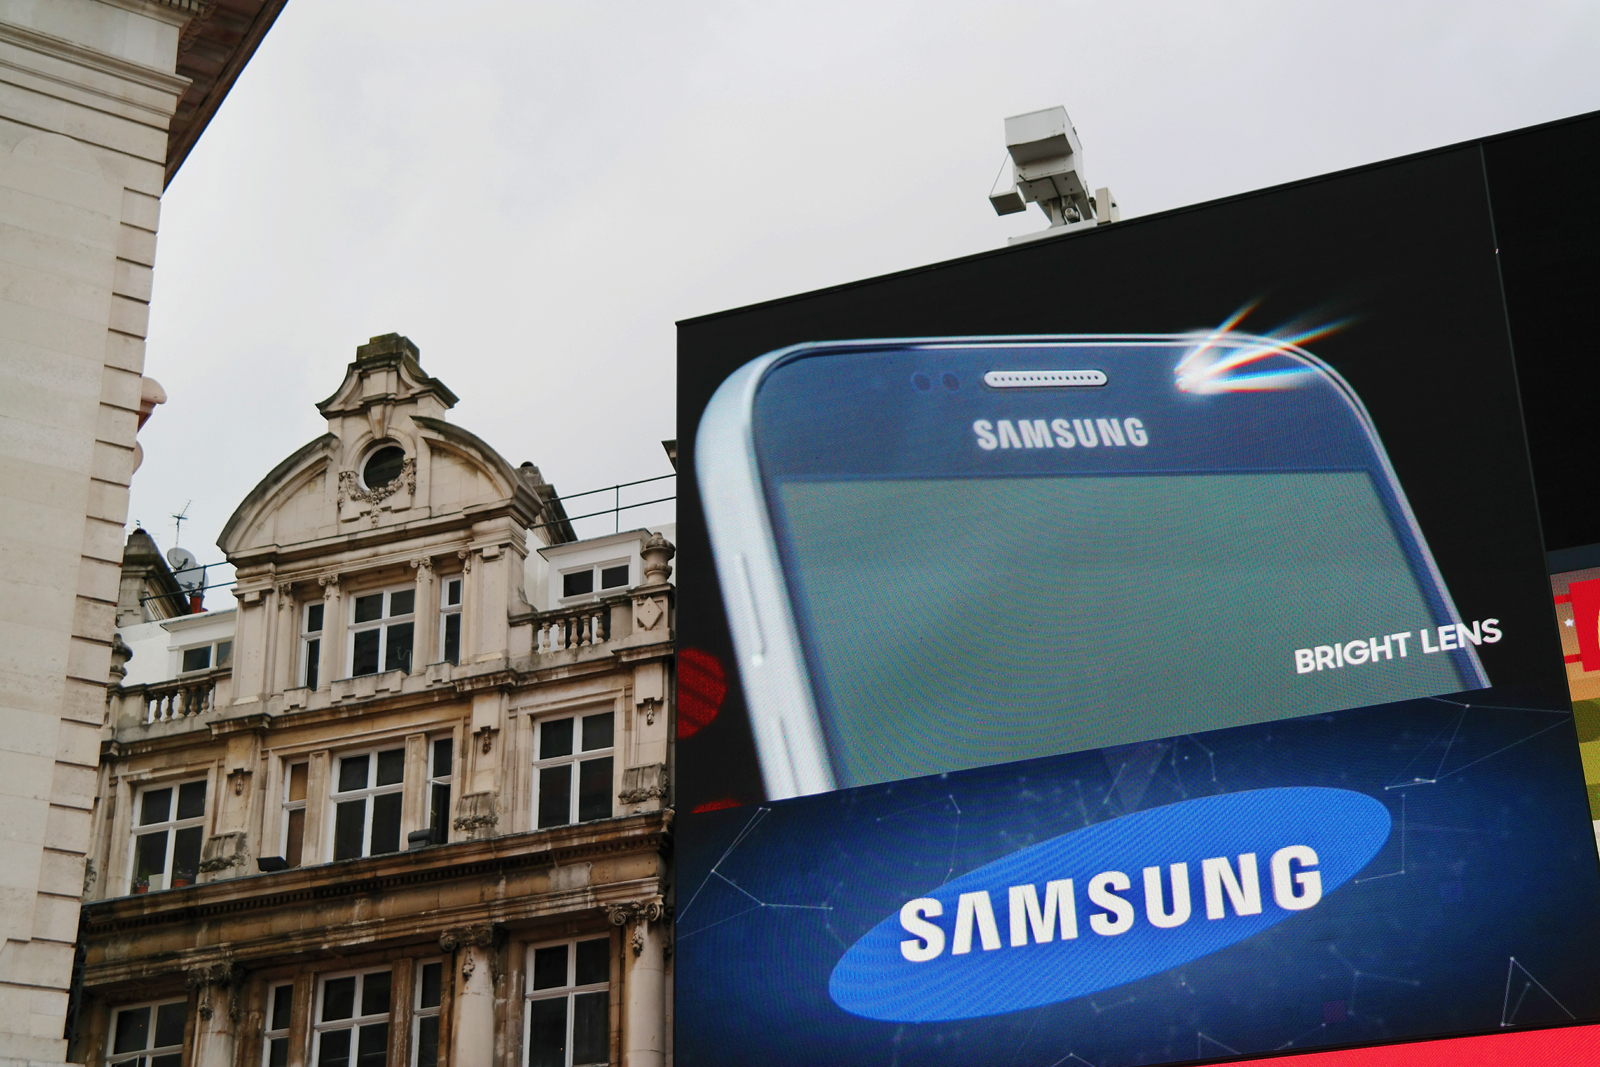 Samsung Galaxy S6 Edge smartphone bright lens Picadilly Circus advertising screens London street Londres publicités sur écran capteur 16 megapixels photo by United States of Paris blog